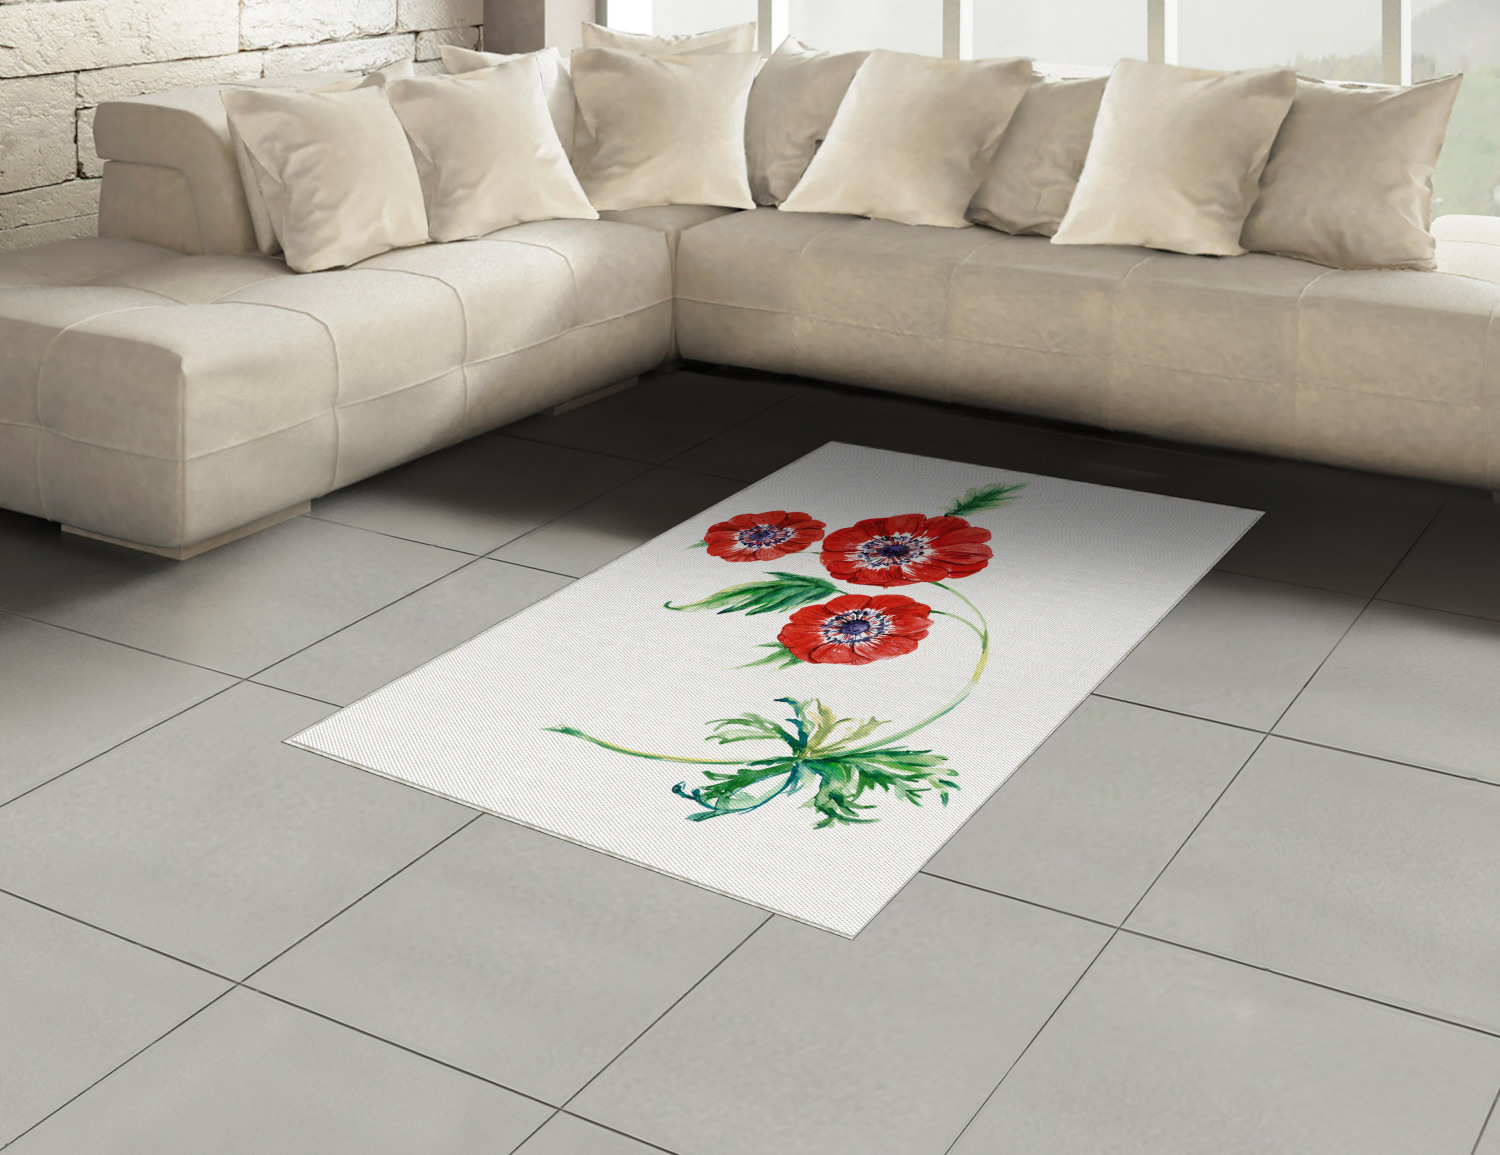 Anemone-Flower-Area-Rug-Decor-Flat-Woven-Accent-Rug-Home-Decor-2-Sizes-Ambesonne thumbnail 36